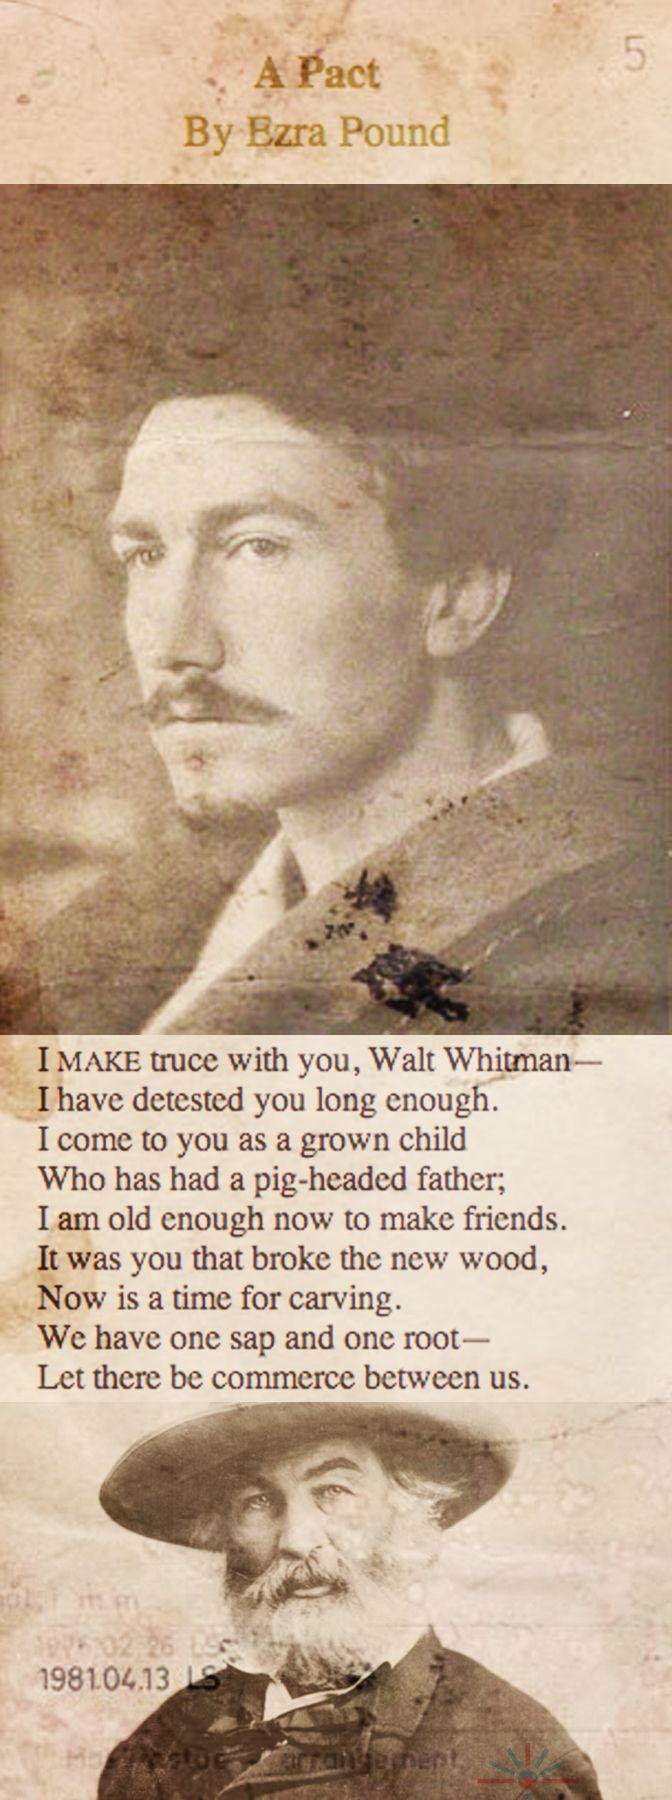 'A Pact' by Ezra Pound - a poem for Walt Whitman